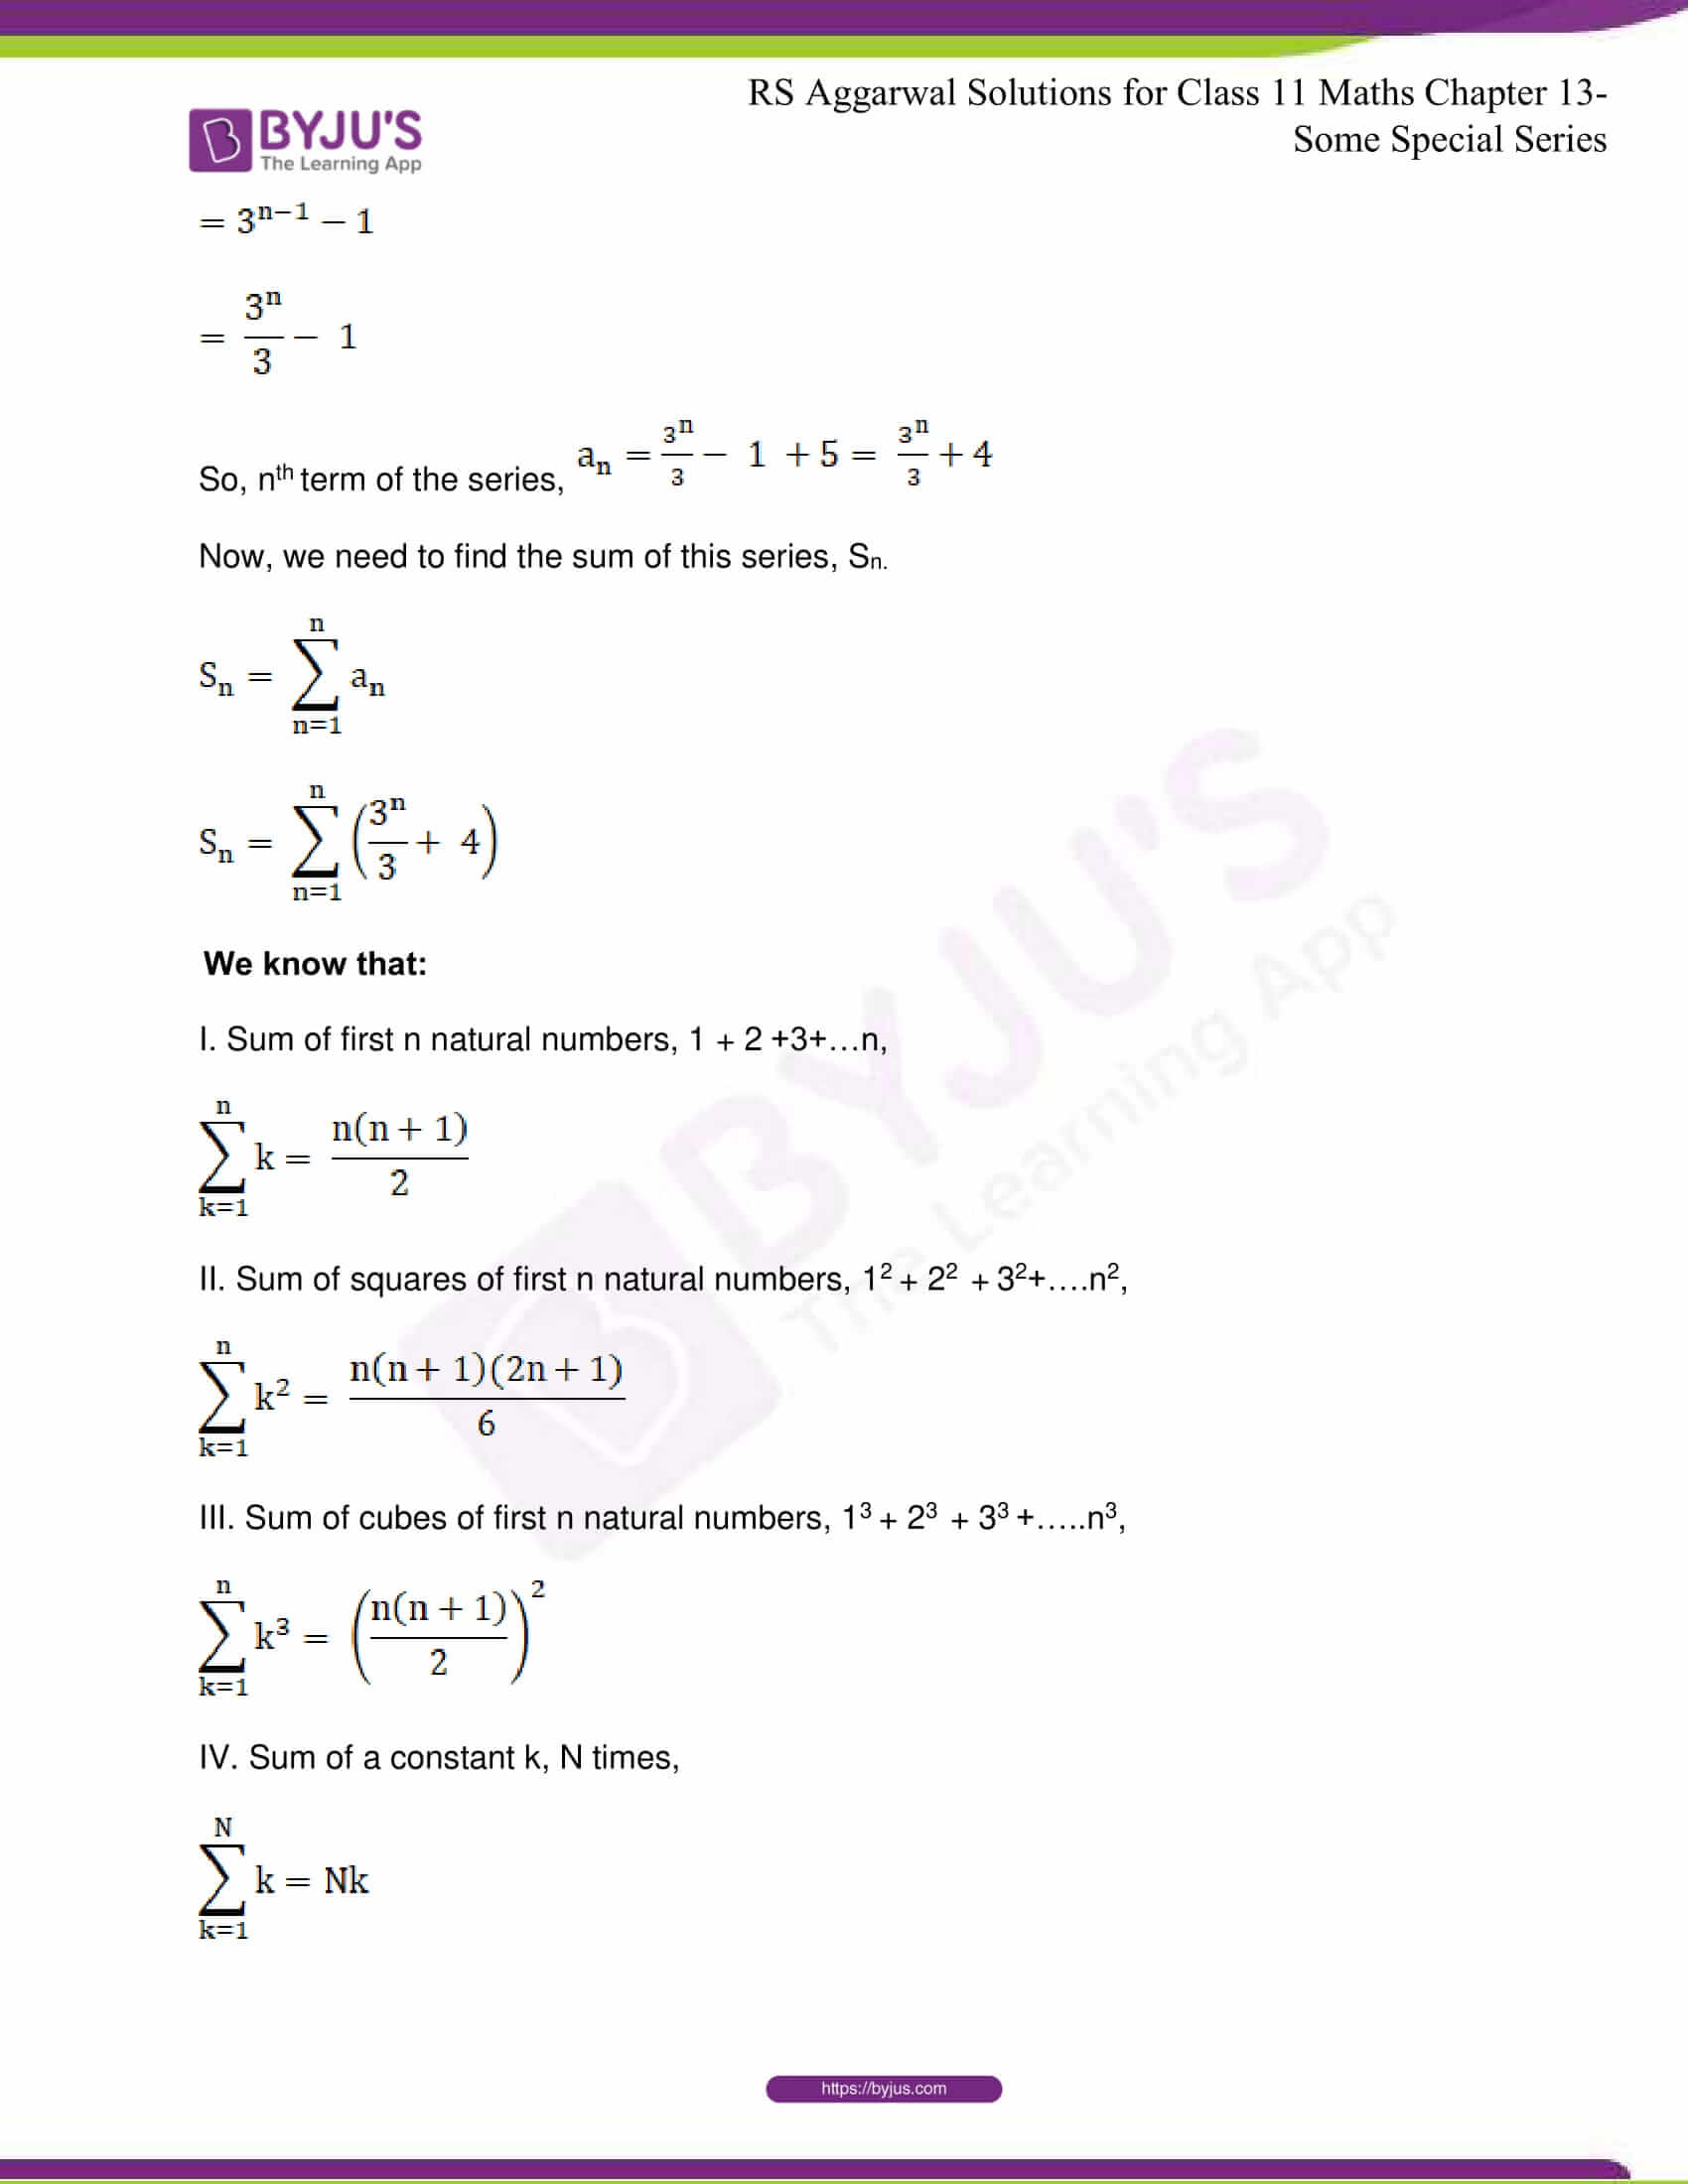 rsaggarwal solutions class 11 maths chapter 13 44